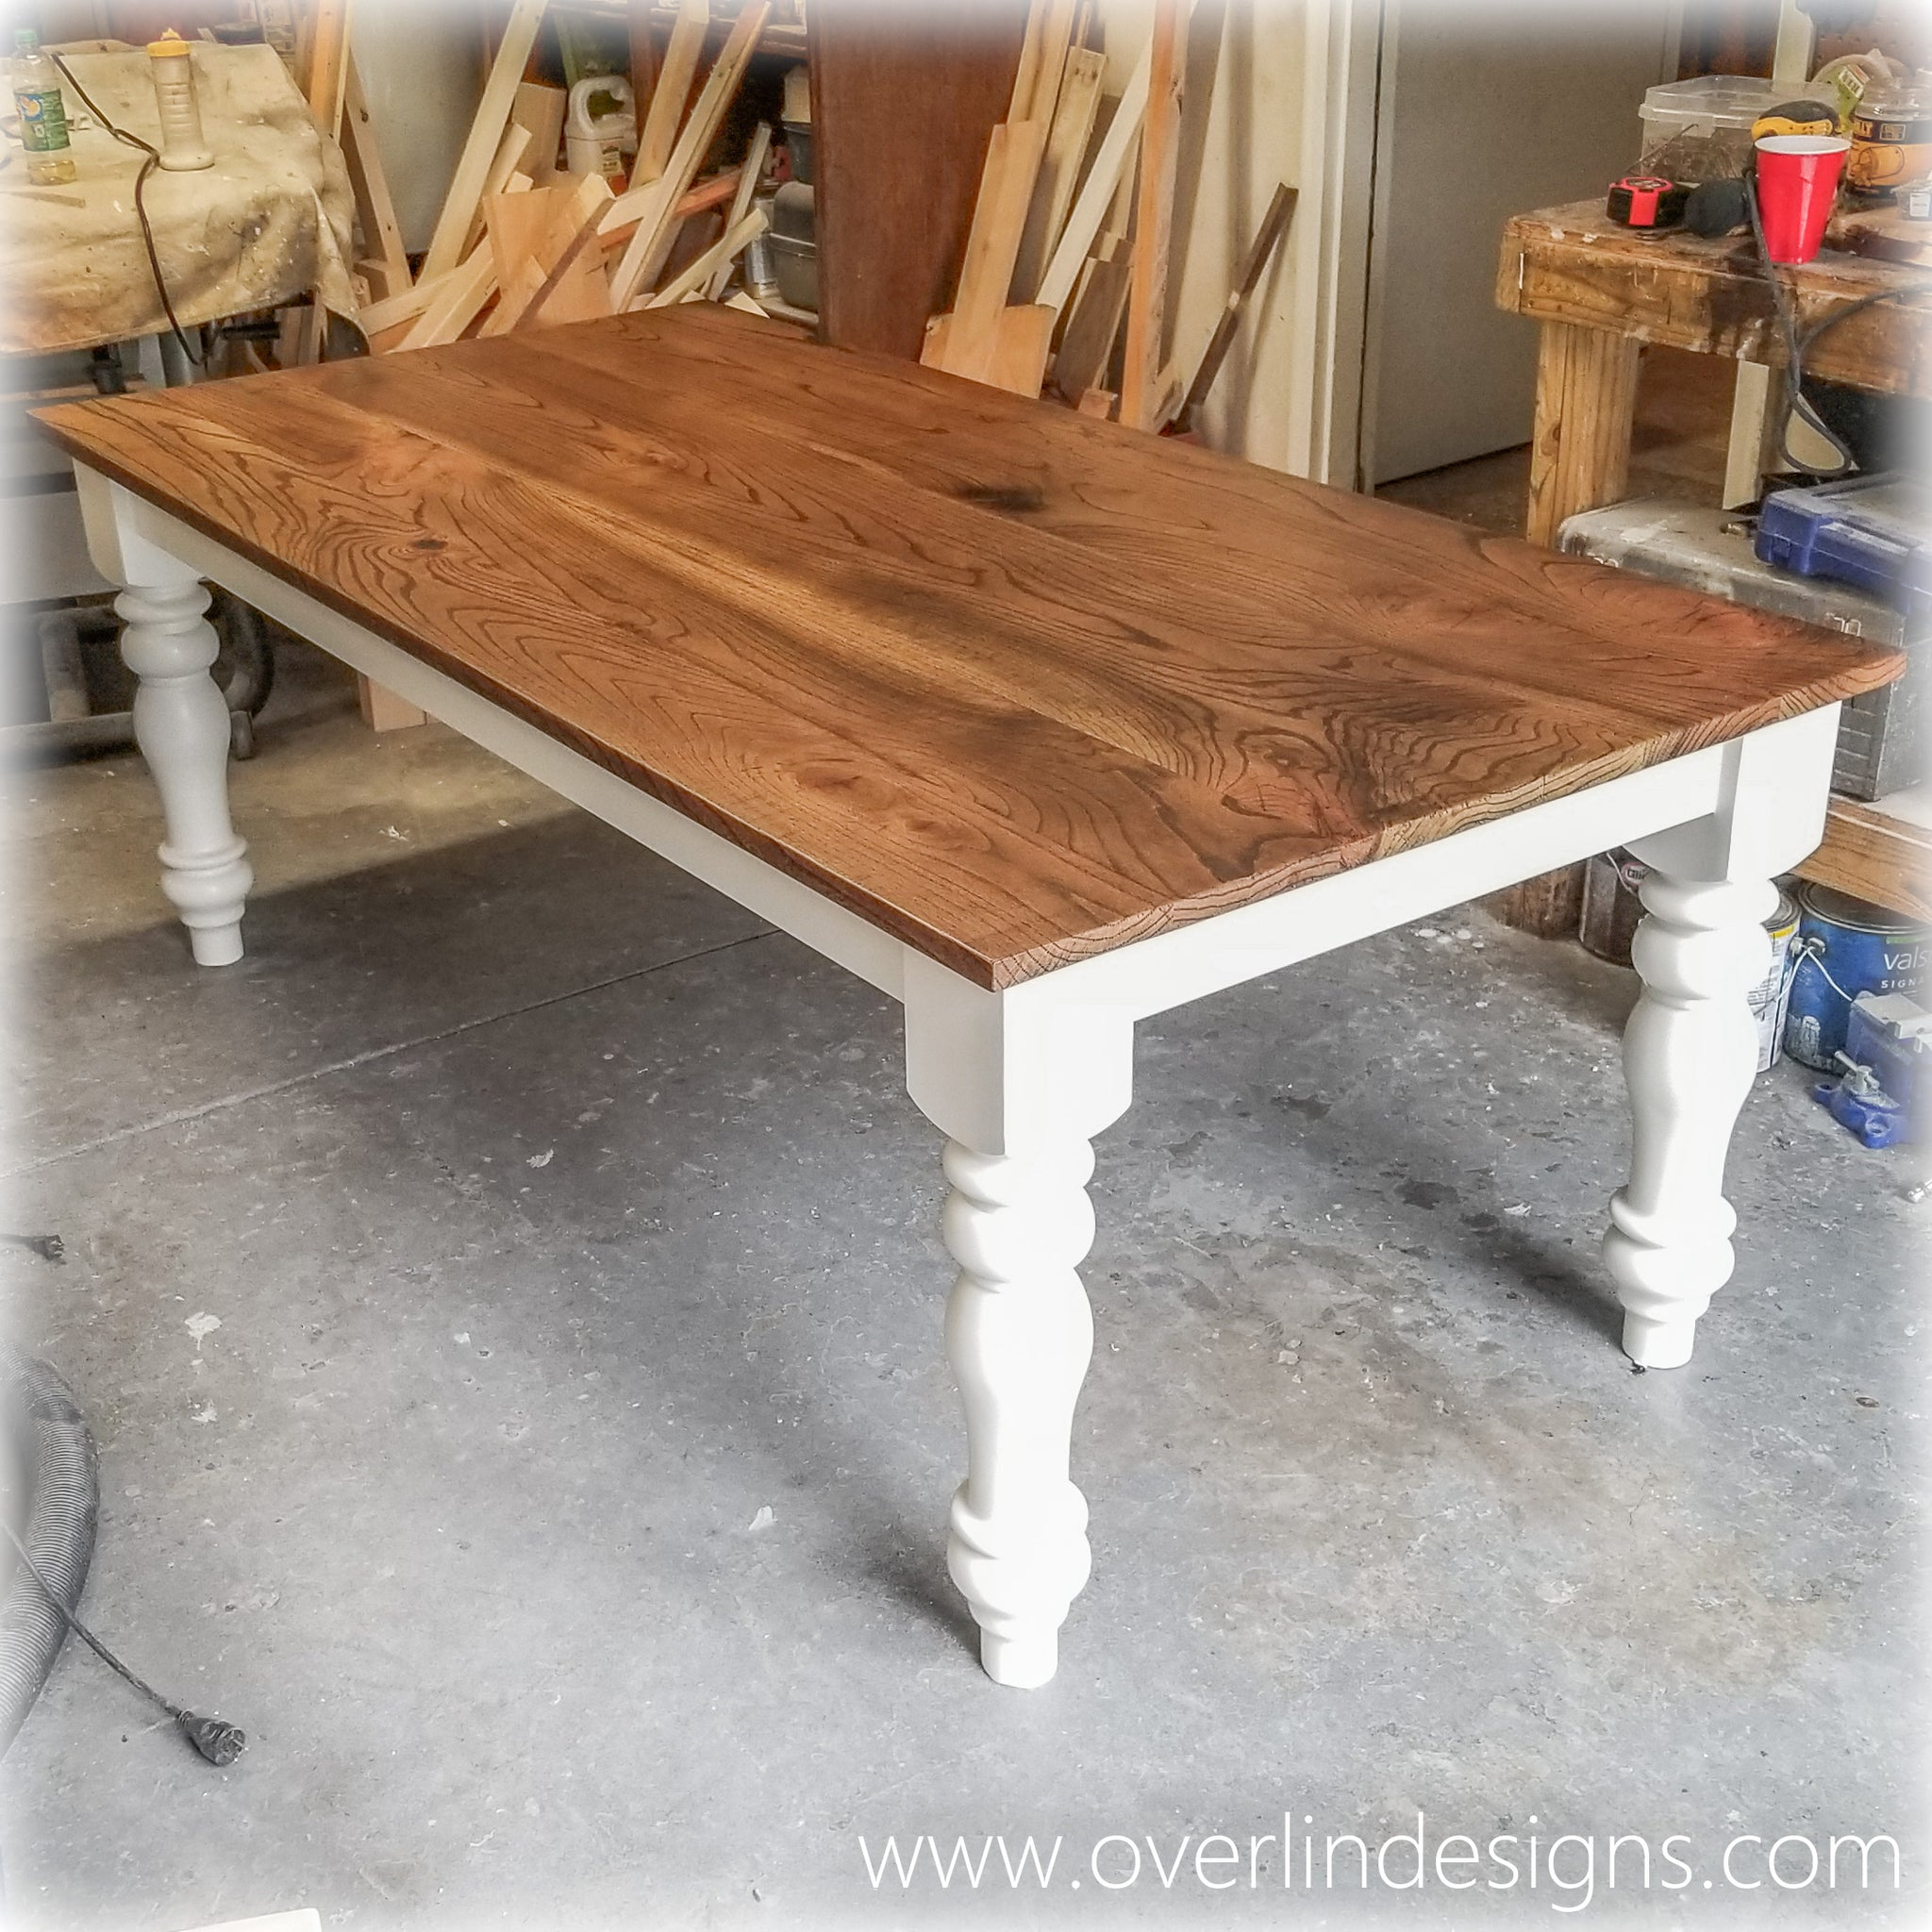 Country Dining Tables   Made to Order   Handcrafted in ...